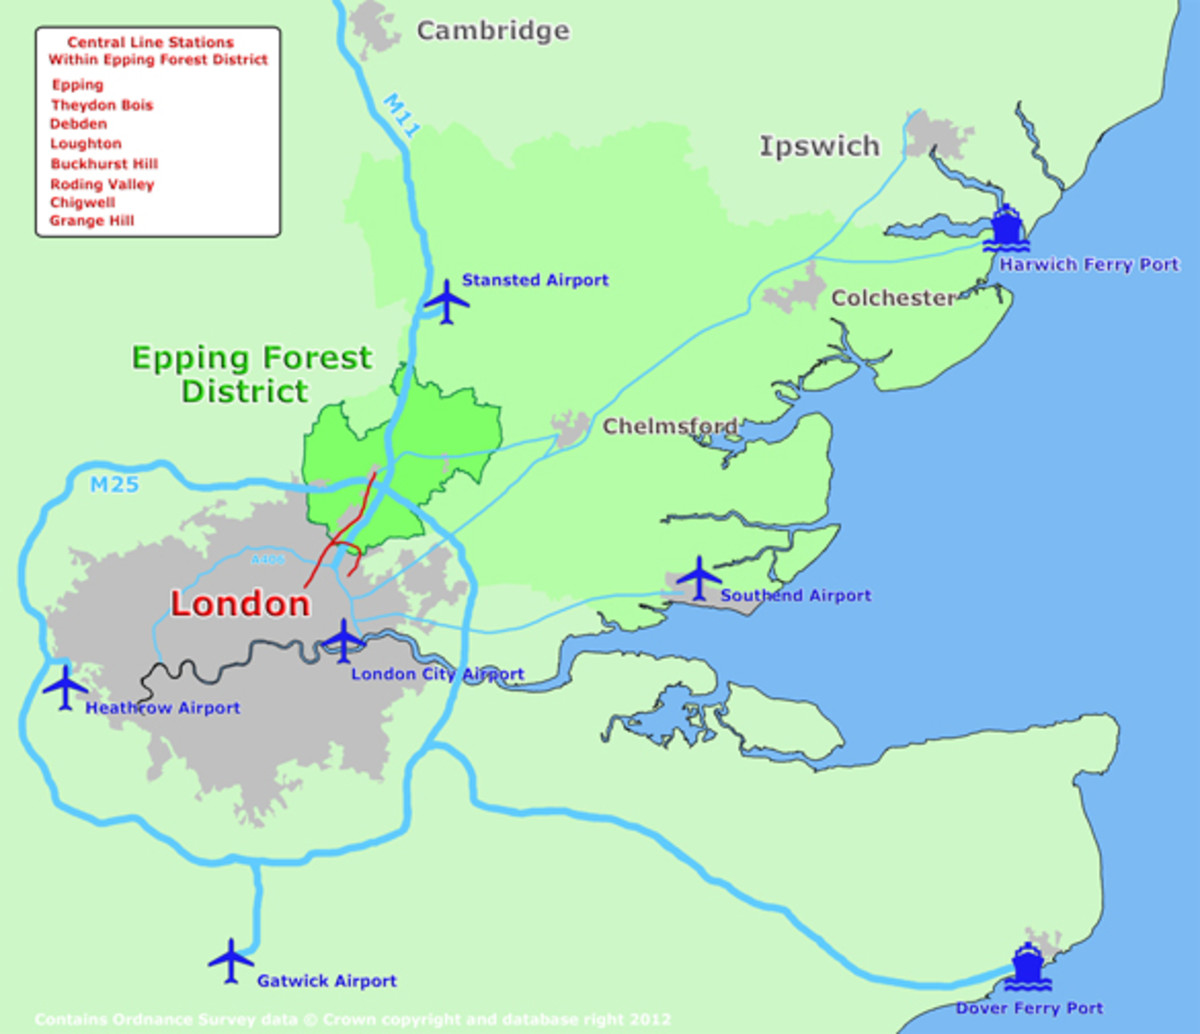 London, the south-east and the Epping Forest area in darker green to the north of the metropolis